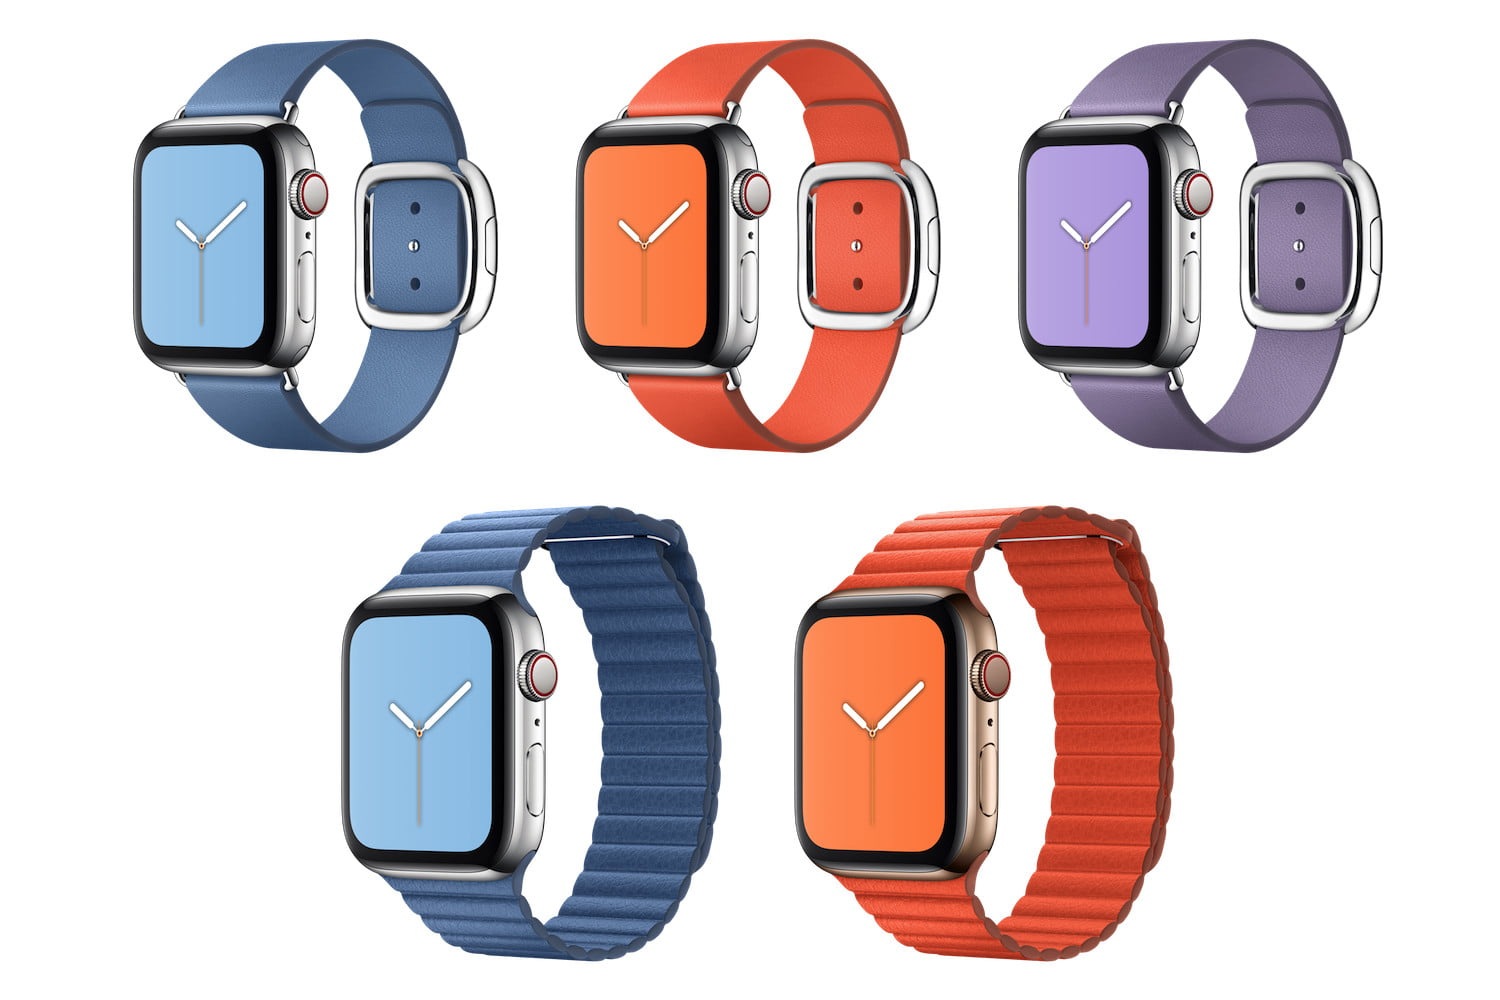 apple watch bands spring 2019 new loop buckle - fortnite apple watch band